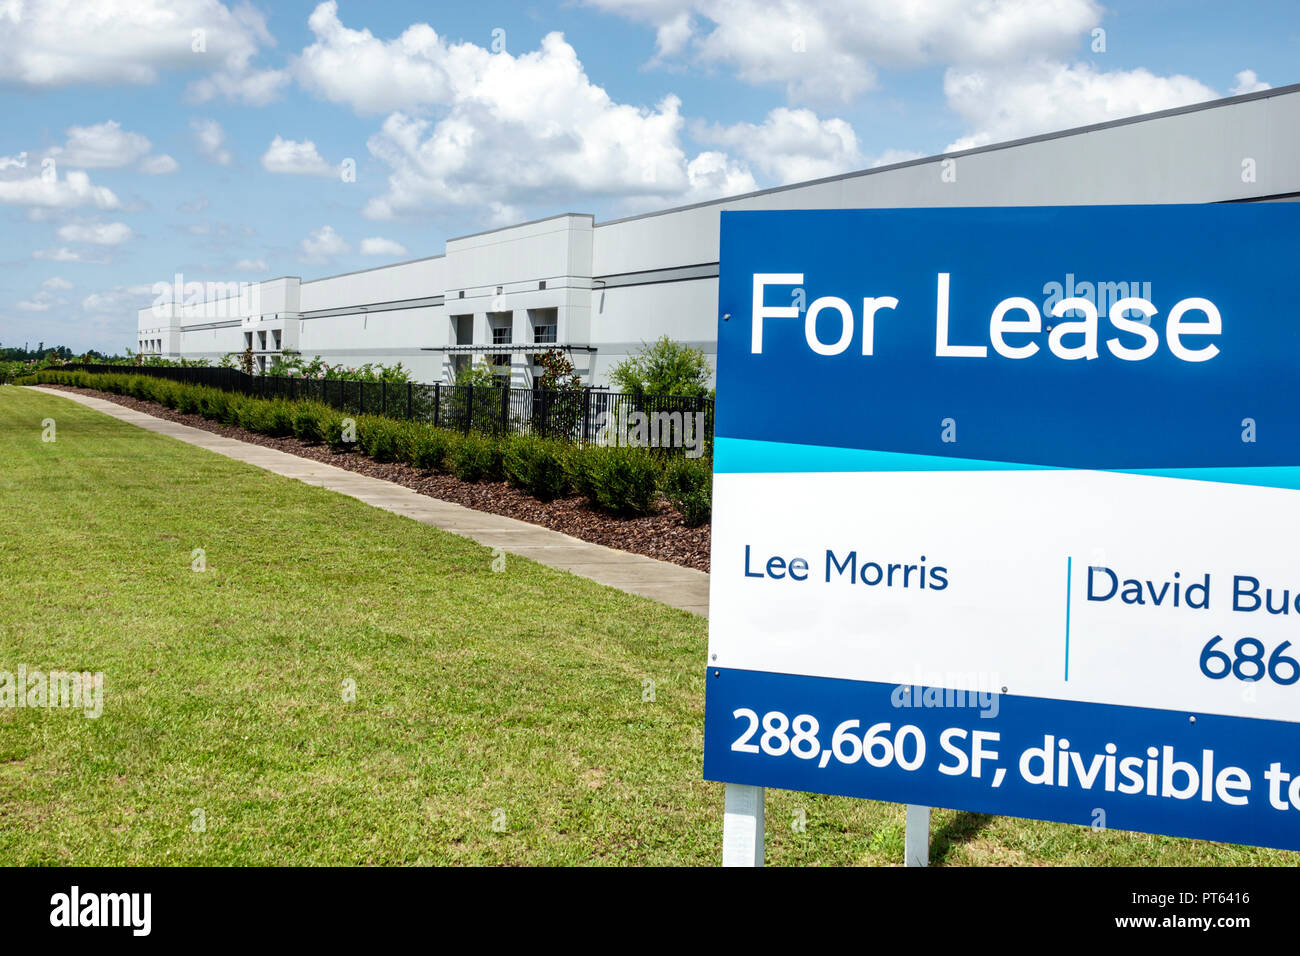 Davenport Florida warehouse for lease sign - Stock Image